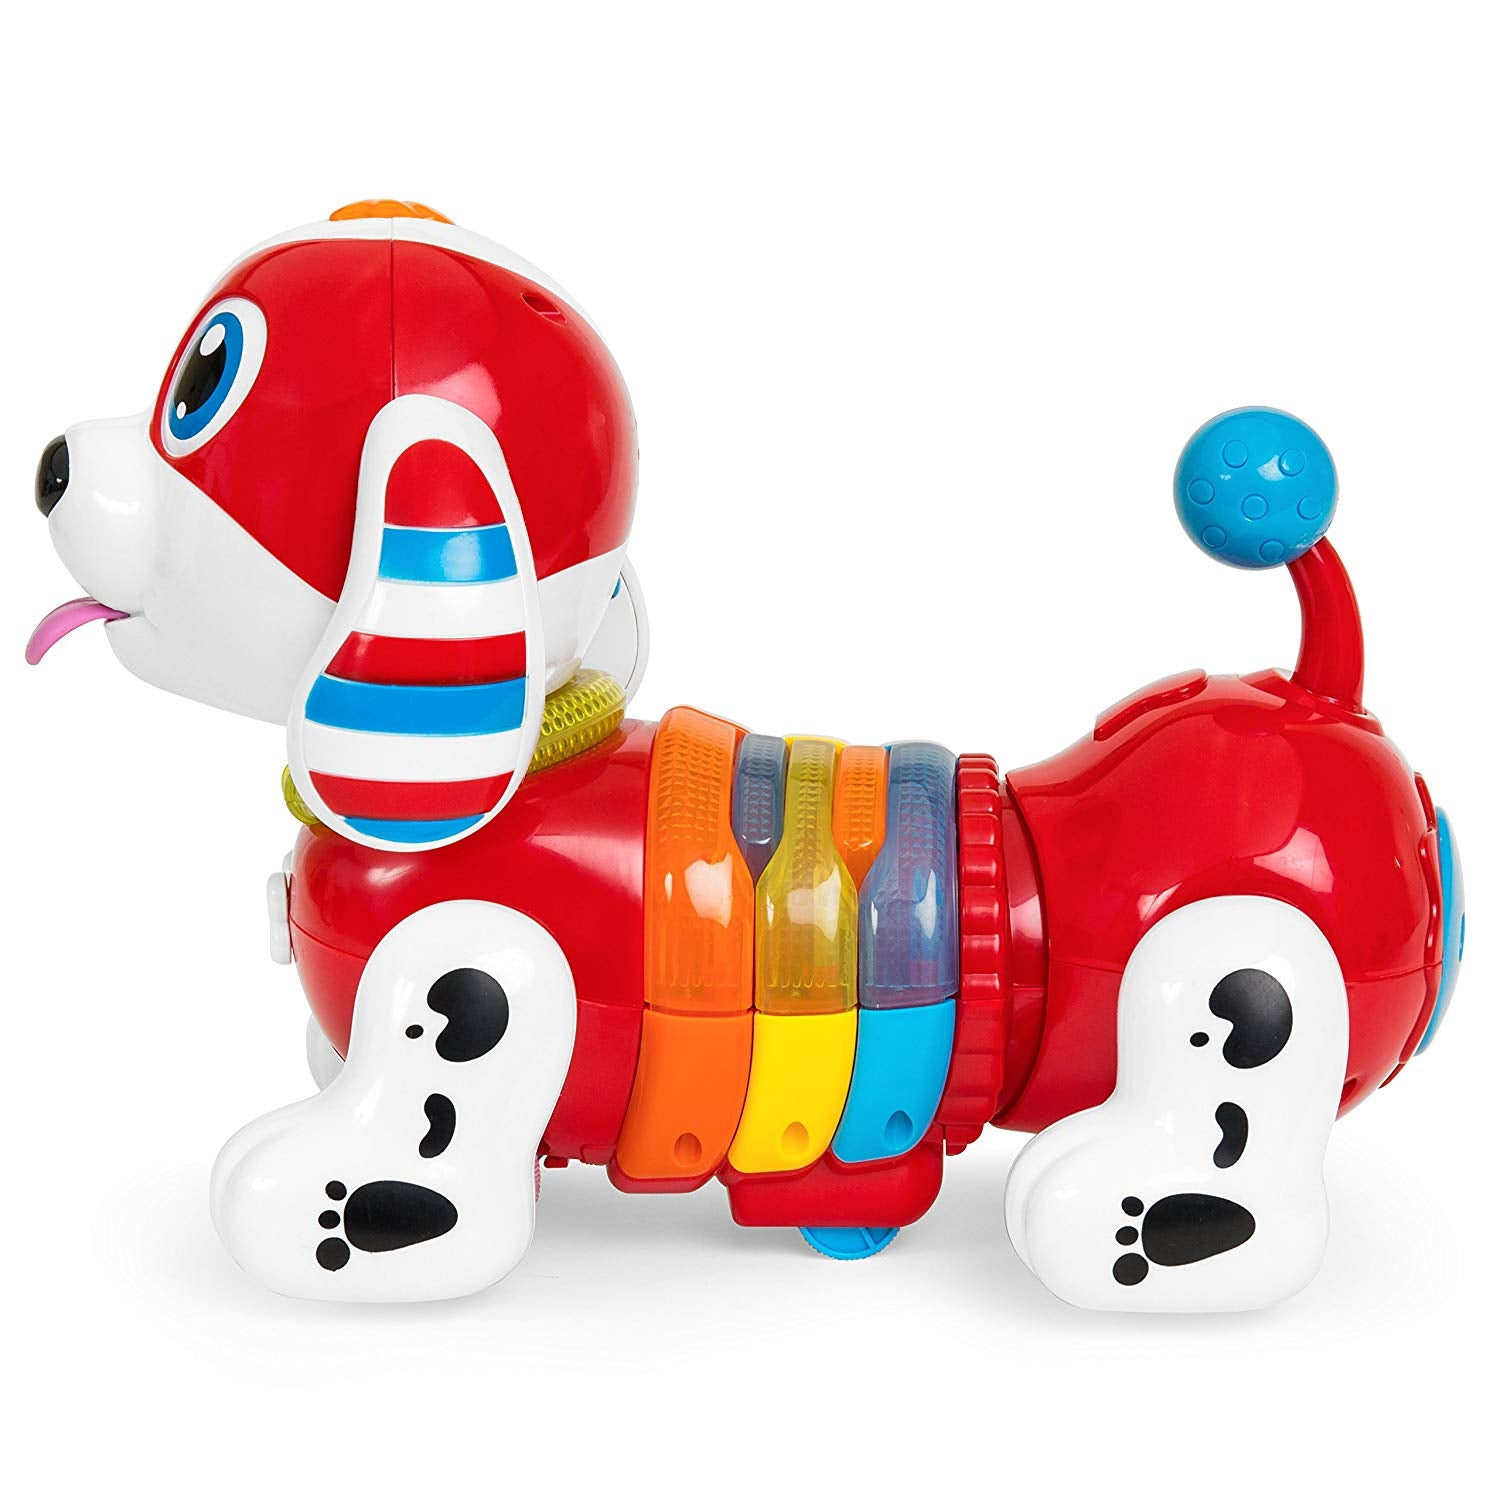 Kids Interactive Dancing RC Robotic Toy Dog w/ Music, Lights, Catchphrases, Touch Responsive